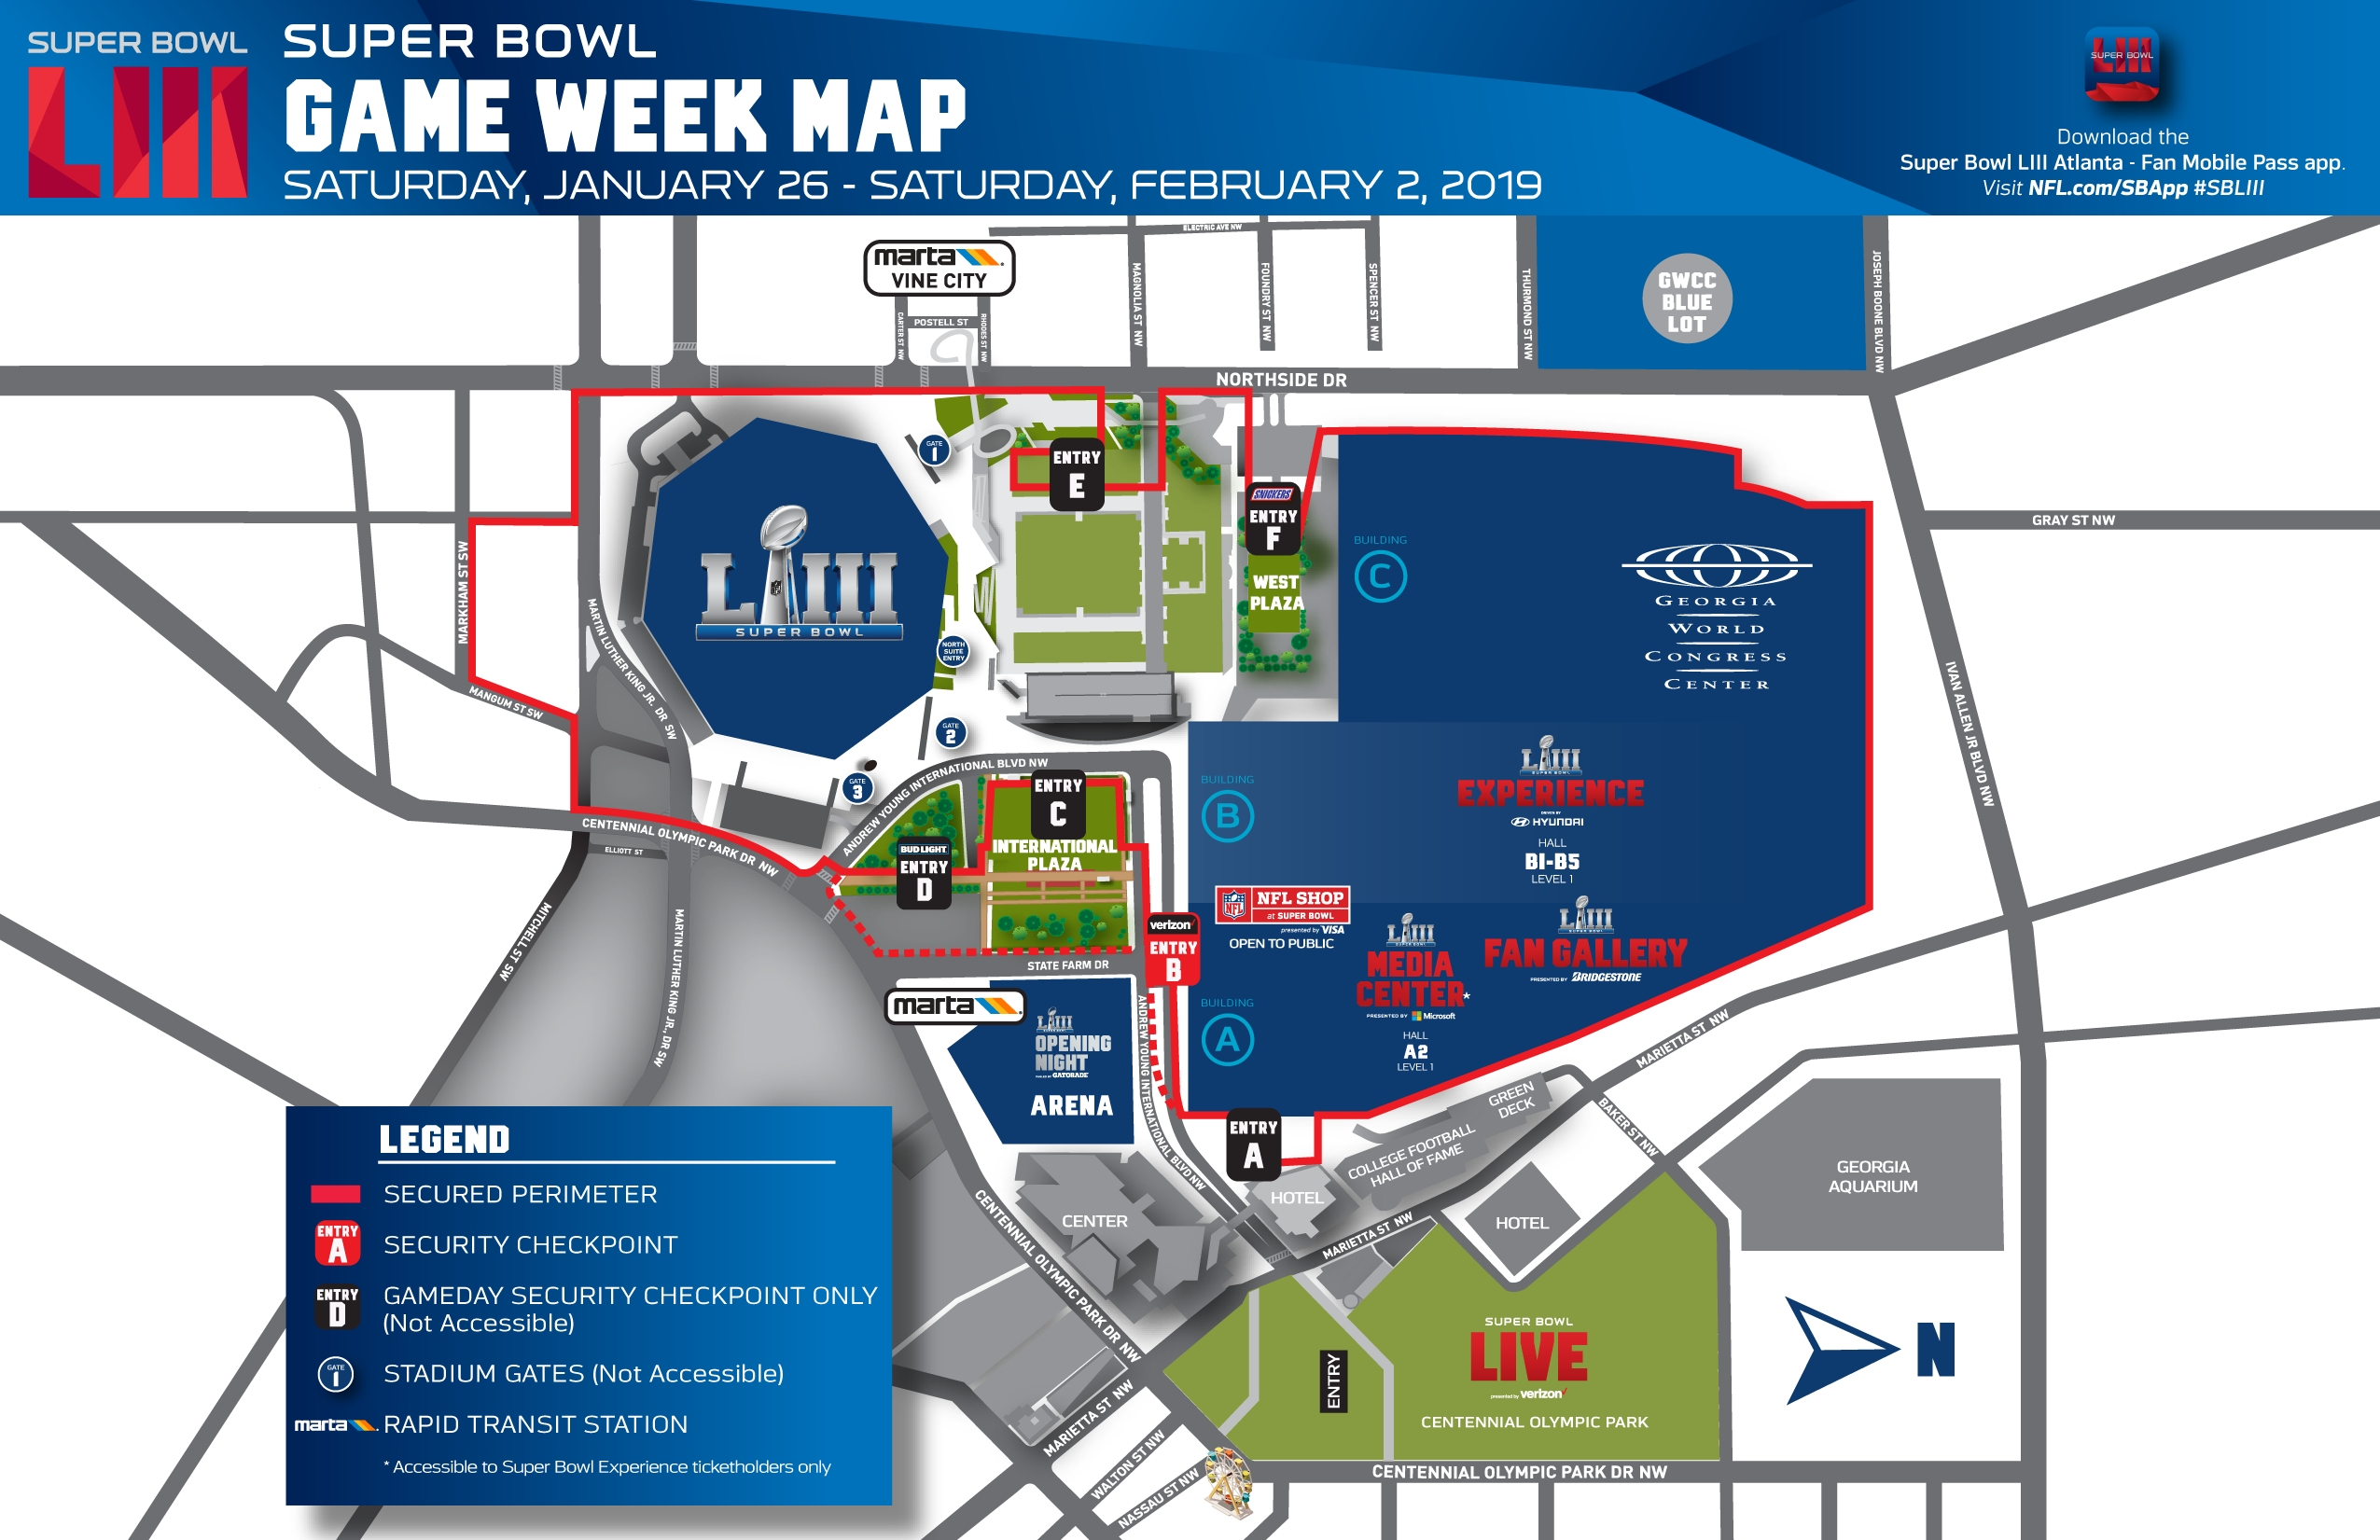 Super Bowl Hub - Mercedes Benz Stadium throughout Map Of Super Bowl Events